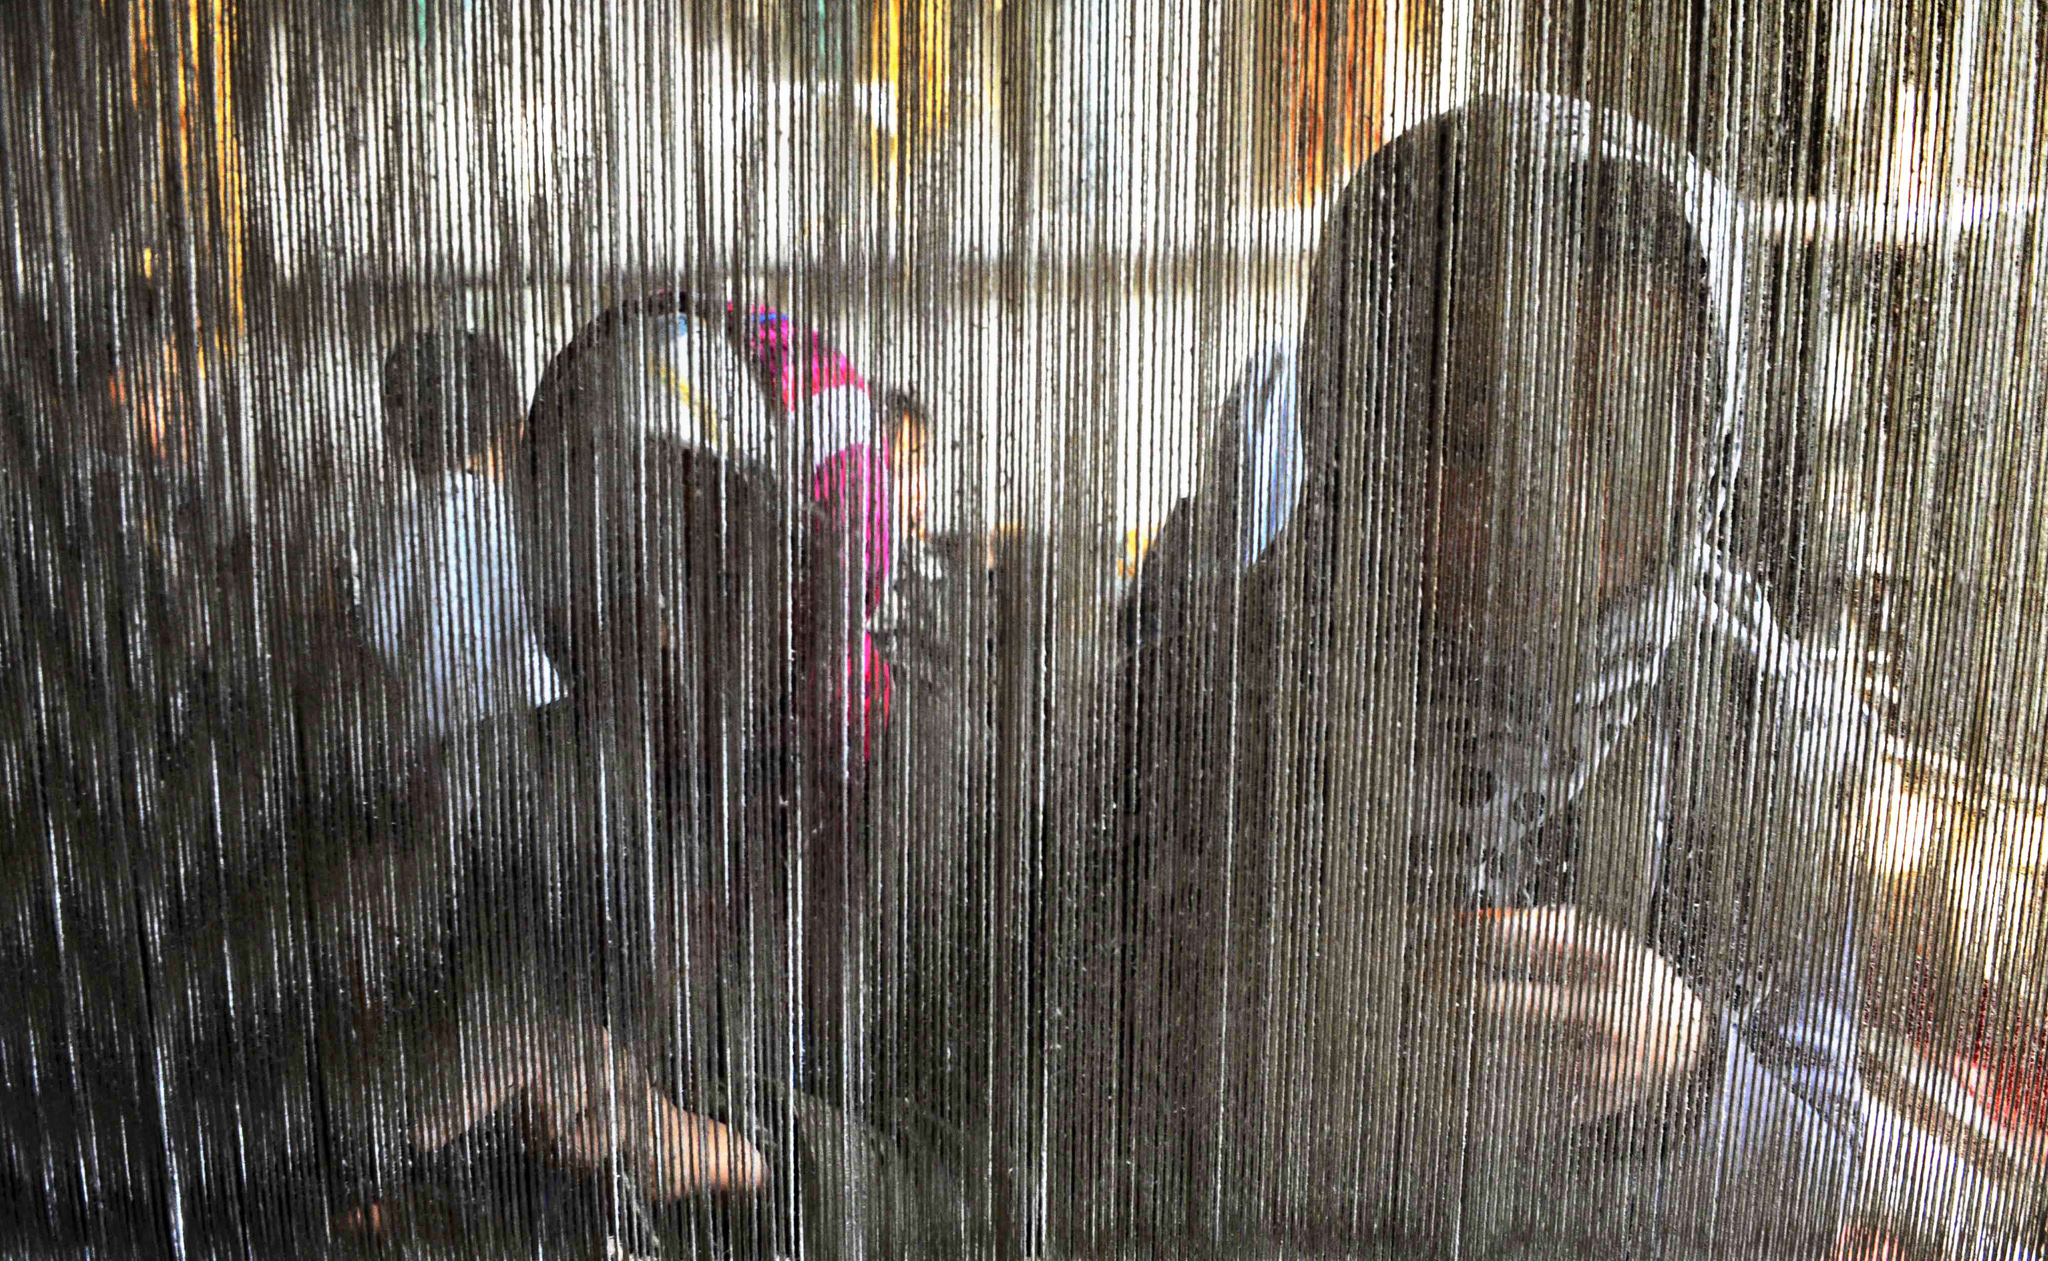 Afghan children weave a carpet at a traditional carpet factory in Herat.